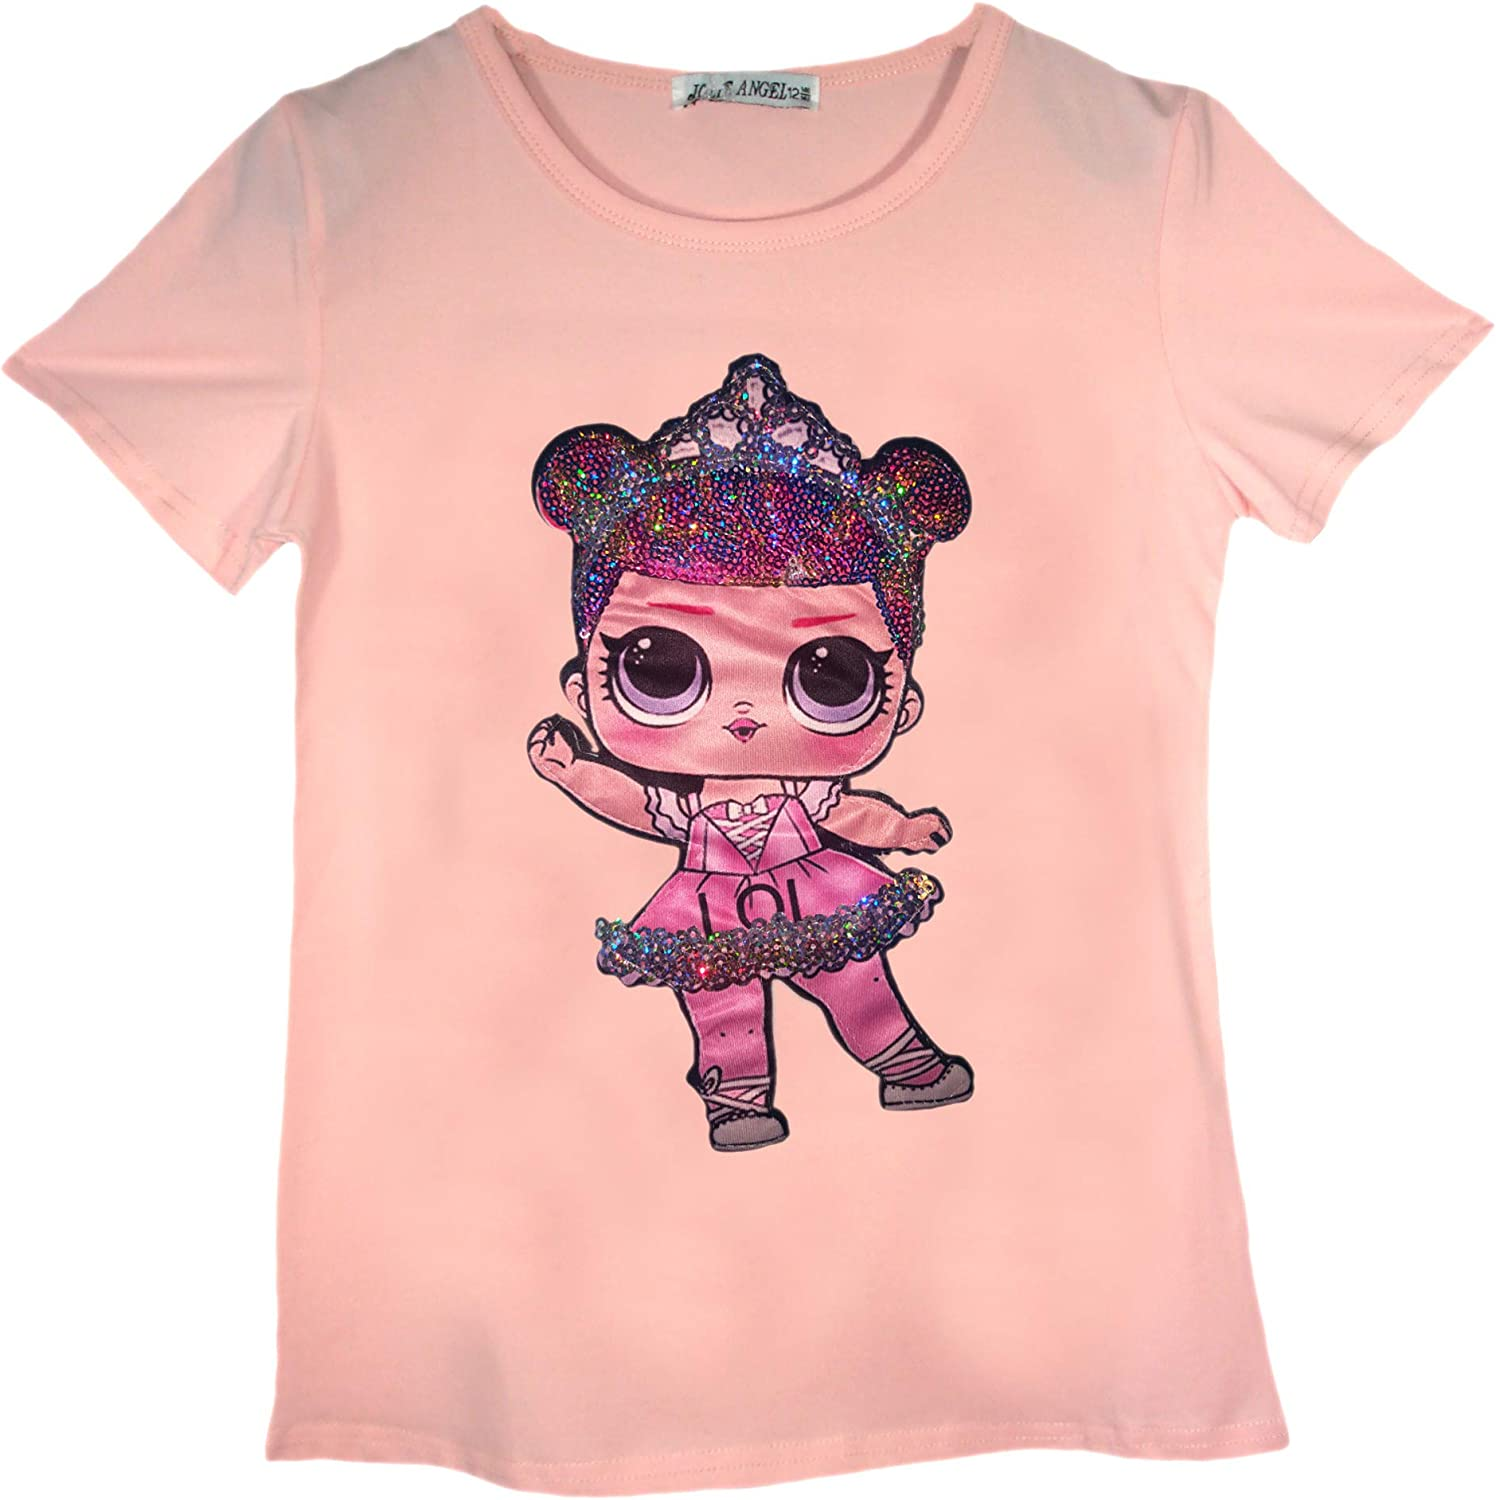 LOL Doll T-Shirts for Girls Emoji Doll Sequin Short Sleeve Tee Cotton Casual Girls Tshirt Size 3-14 Years